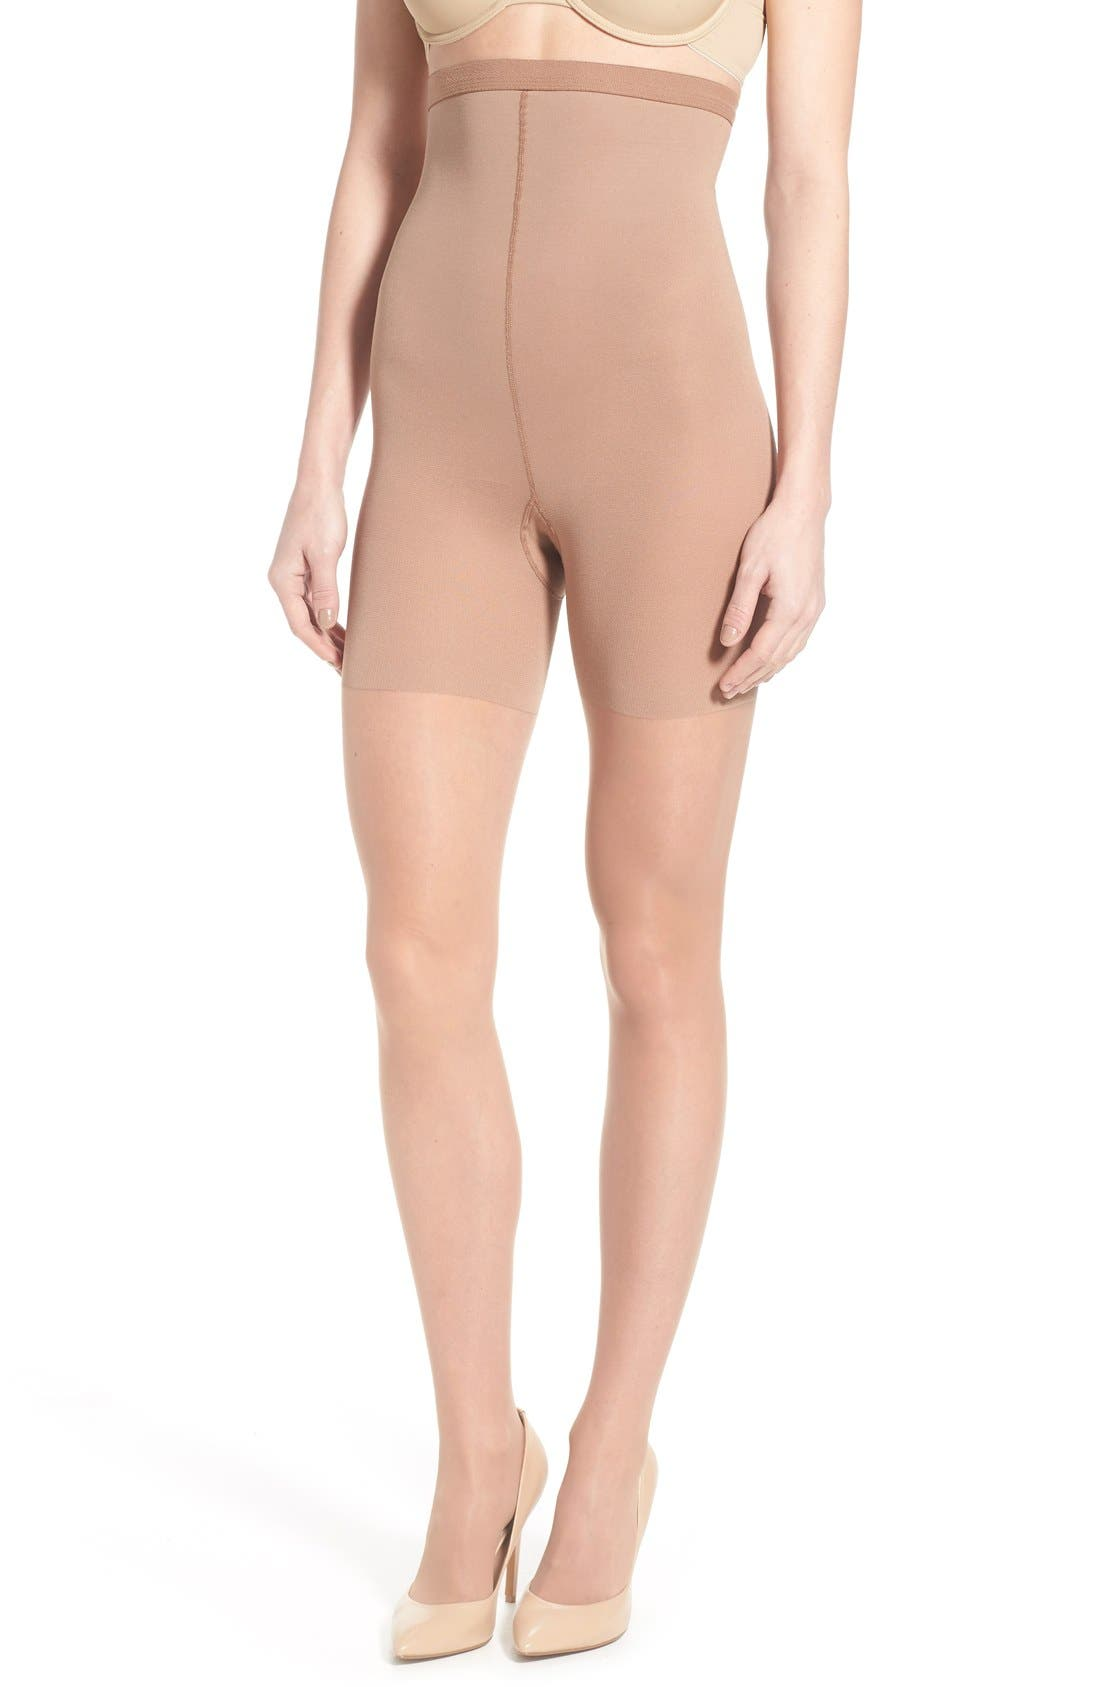 Seamed Stockings, Nylons, Tights Womens Spanx Luxe High Waist Shaping Pantyhose Size E - Beige $19.20 AT vintagedancer.com